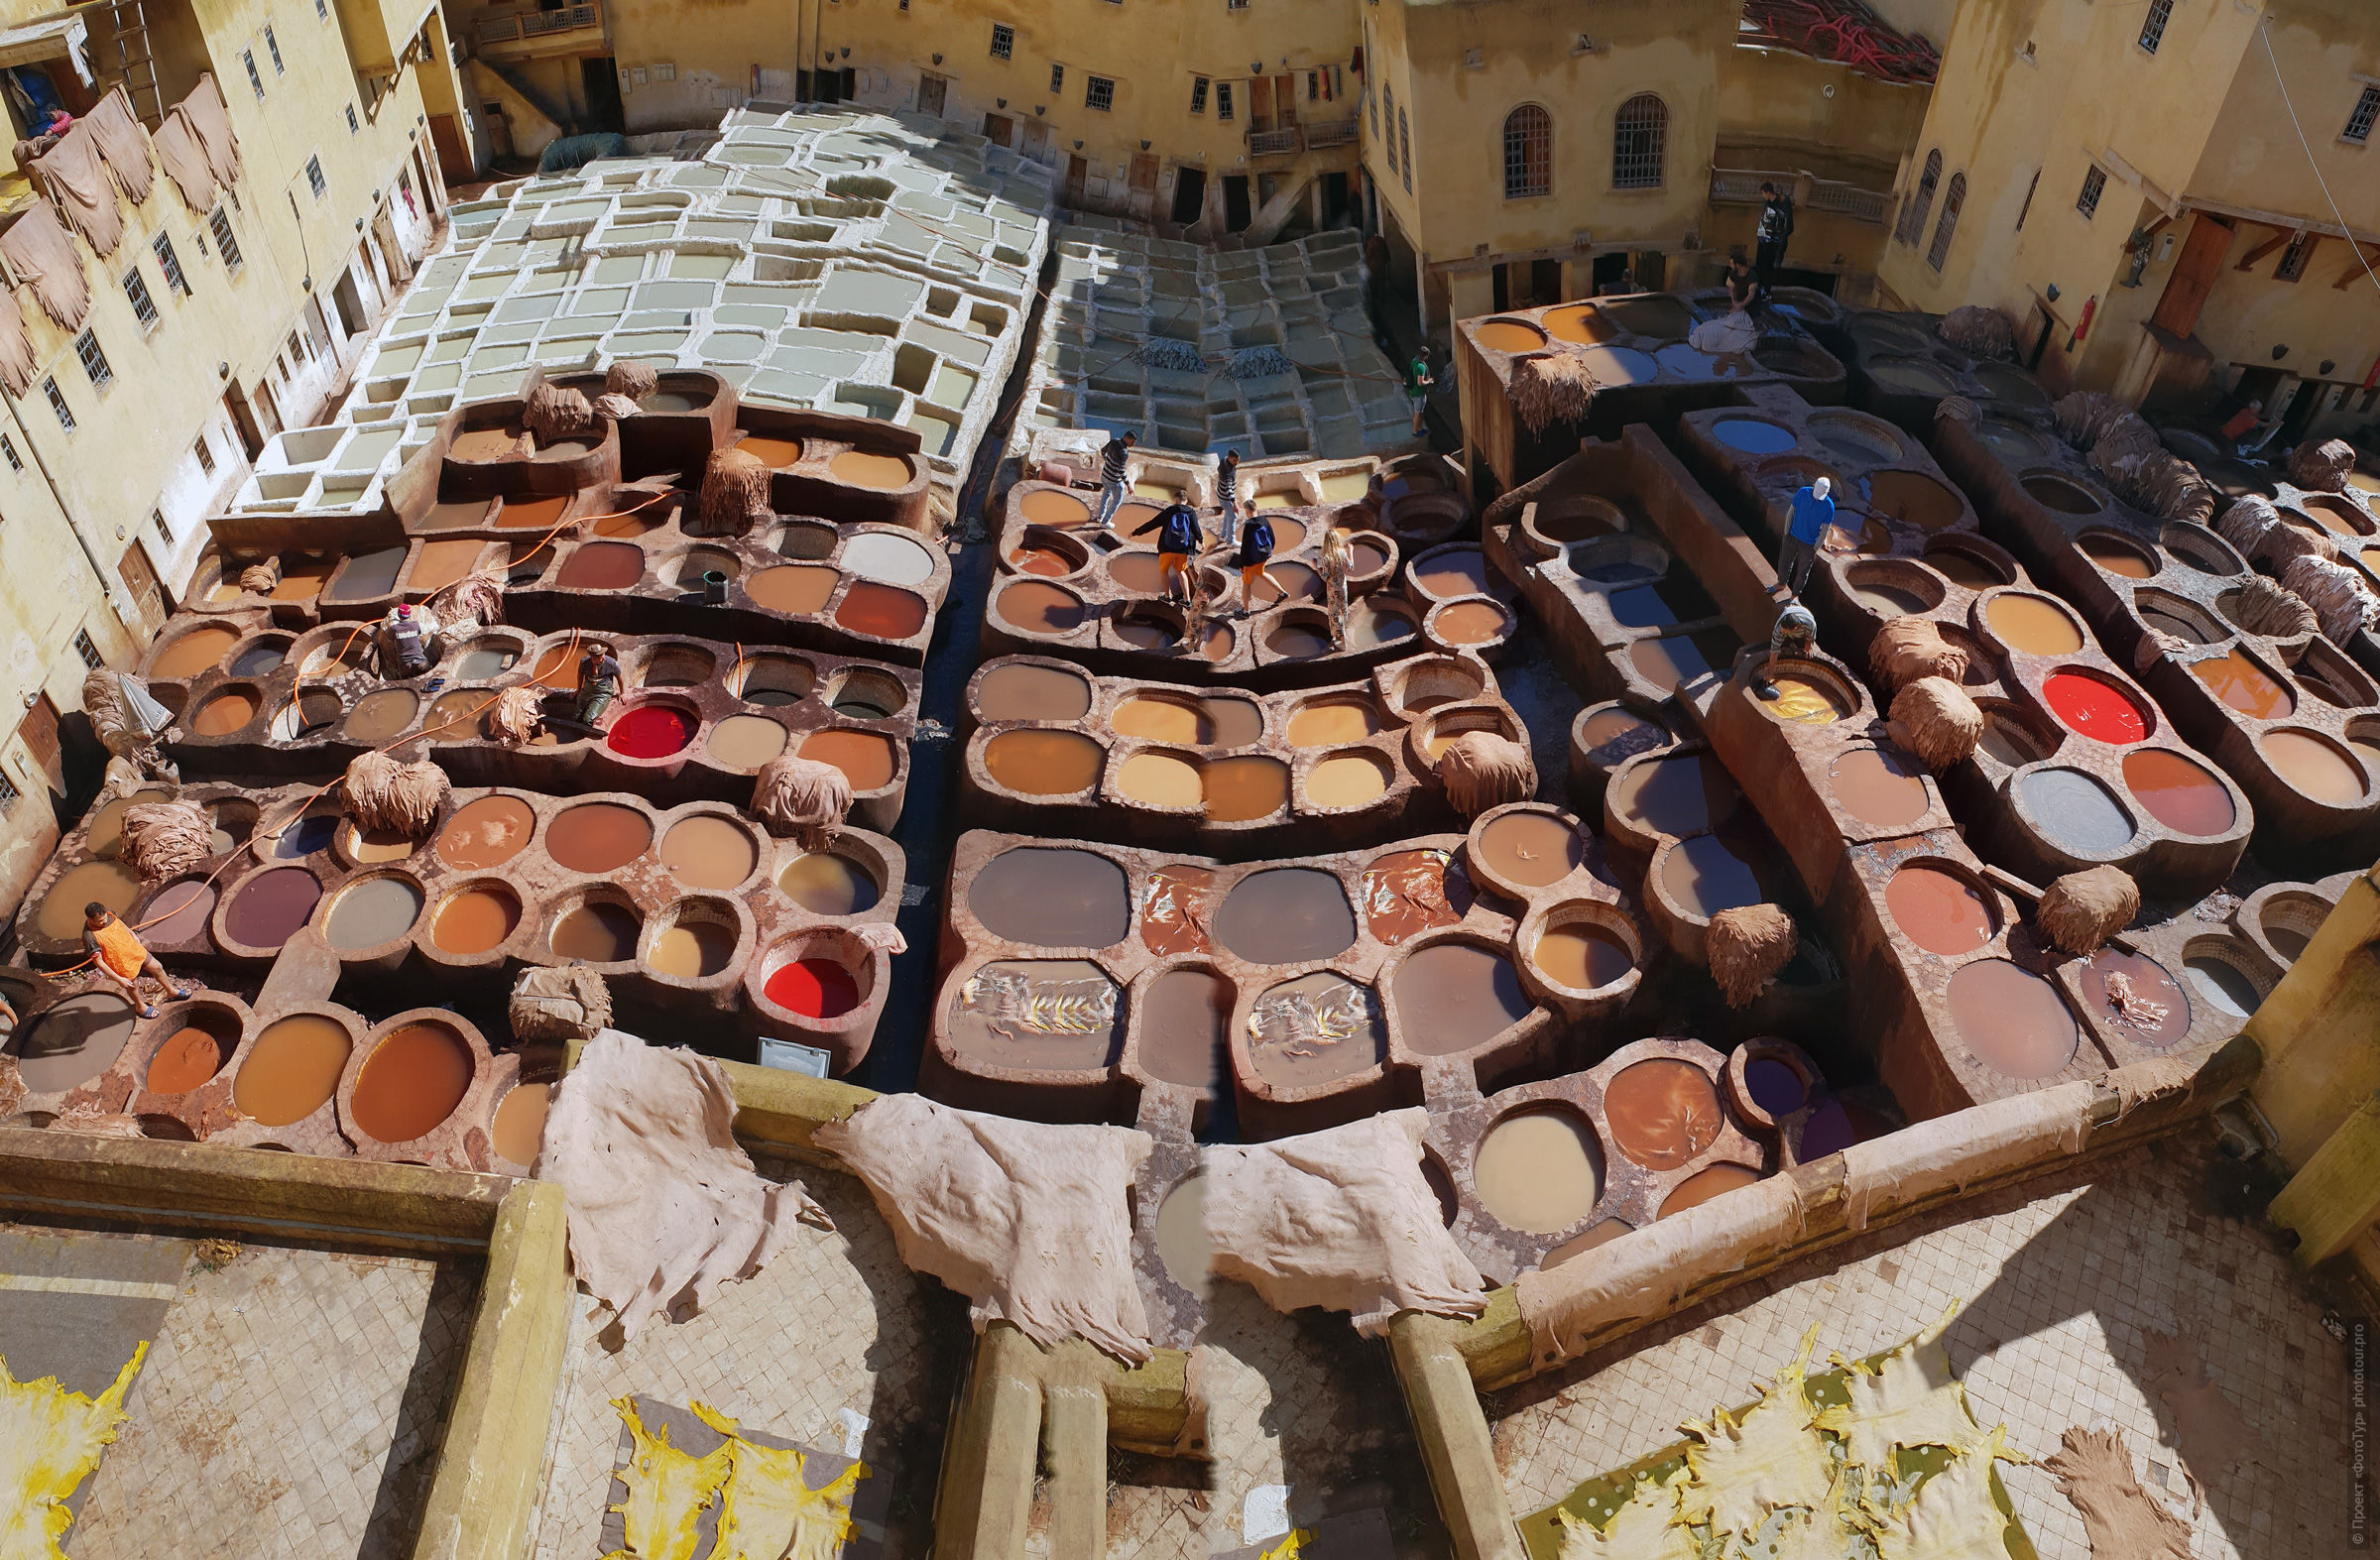 Shuara dyeing room, photo panorama. Adventure photo tour: medina, cascades, sands and ports of Morocco, April 4 - 17, 2020.